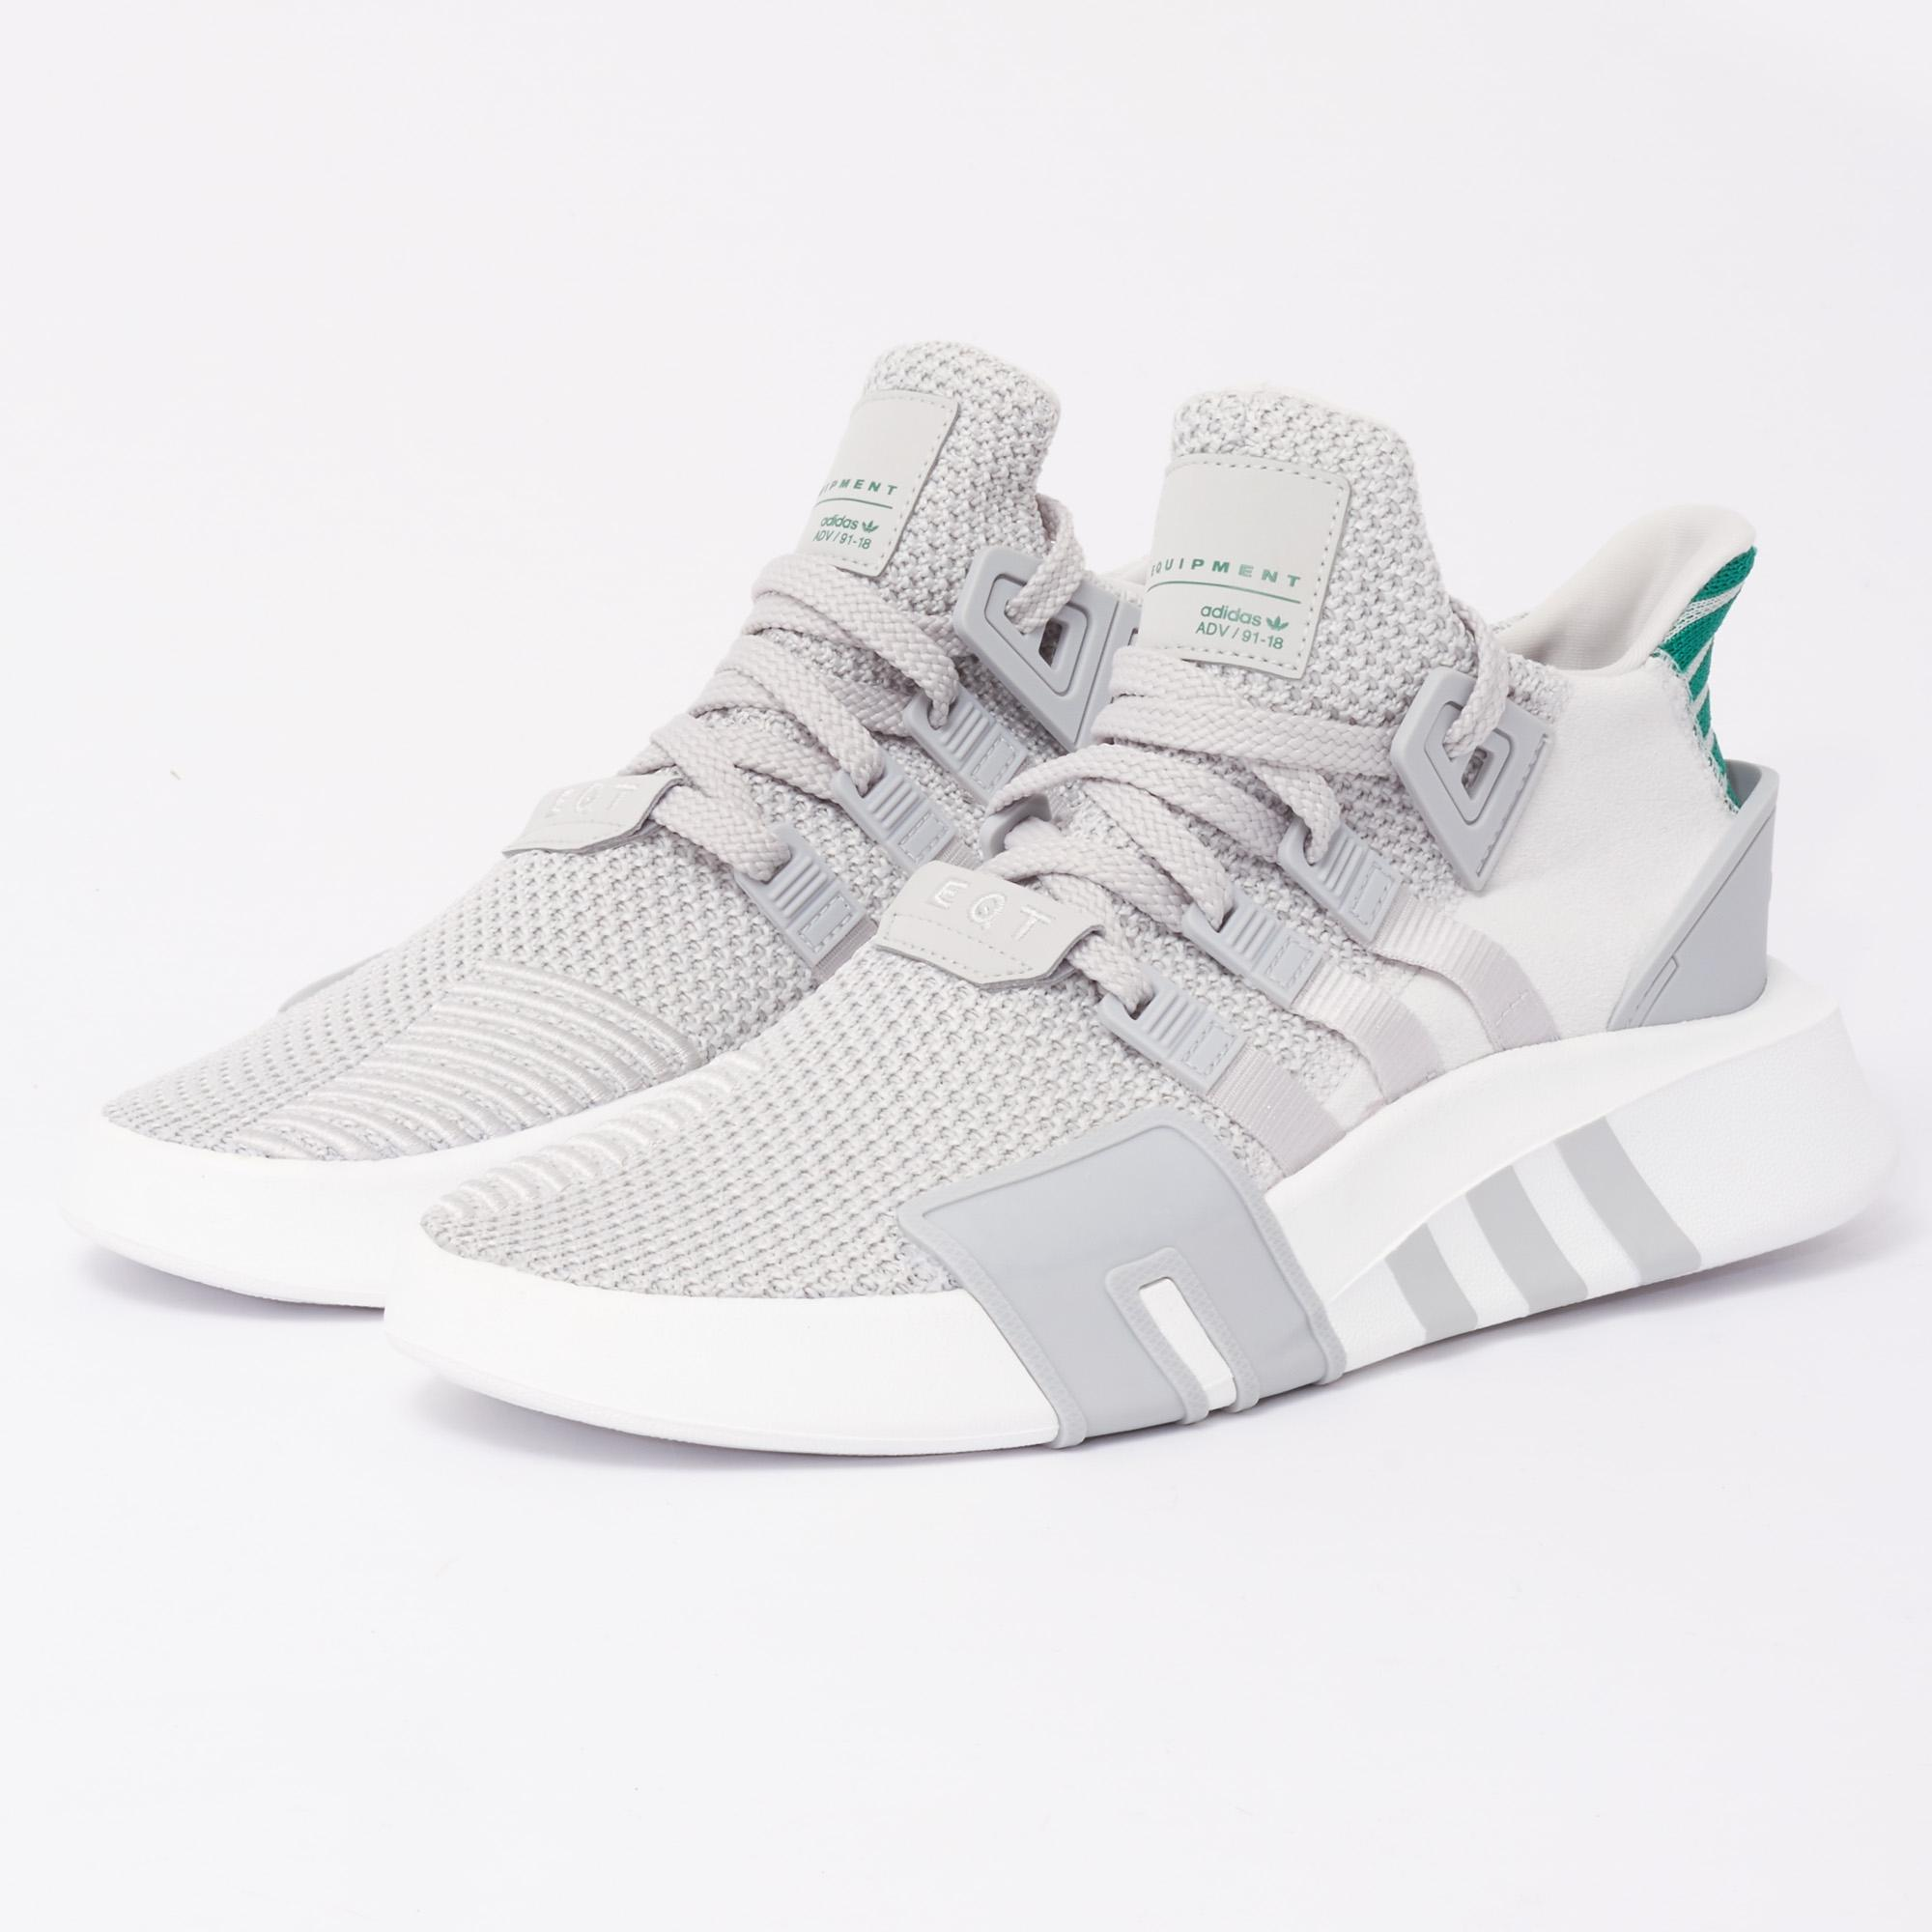 fc9ef60318b adidas Originals Eqt Bask Adv Shoes - Grey in Gray for Men - Lyst